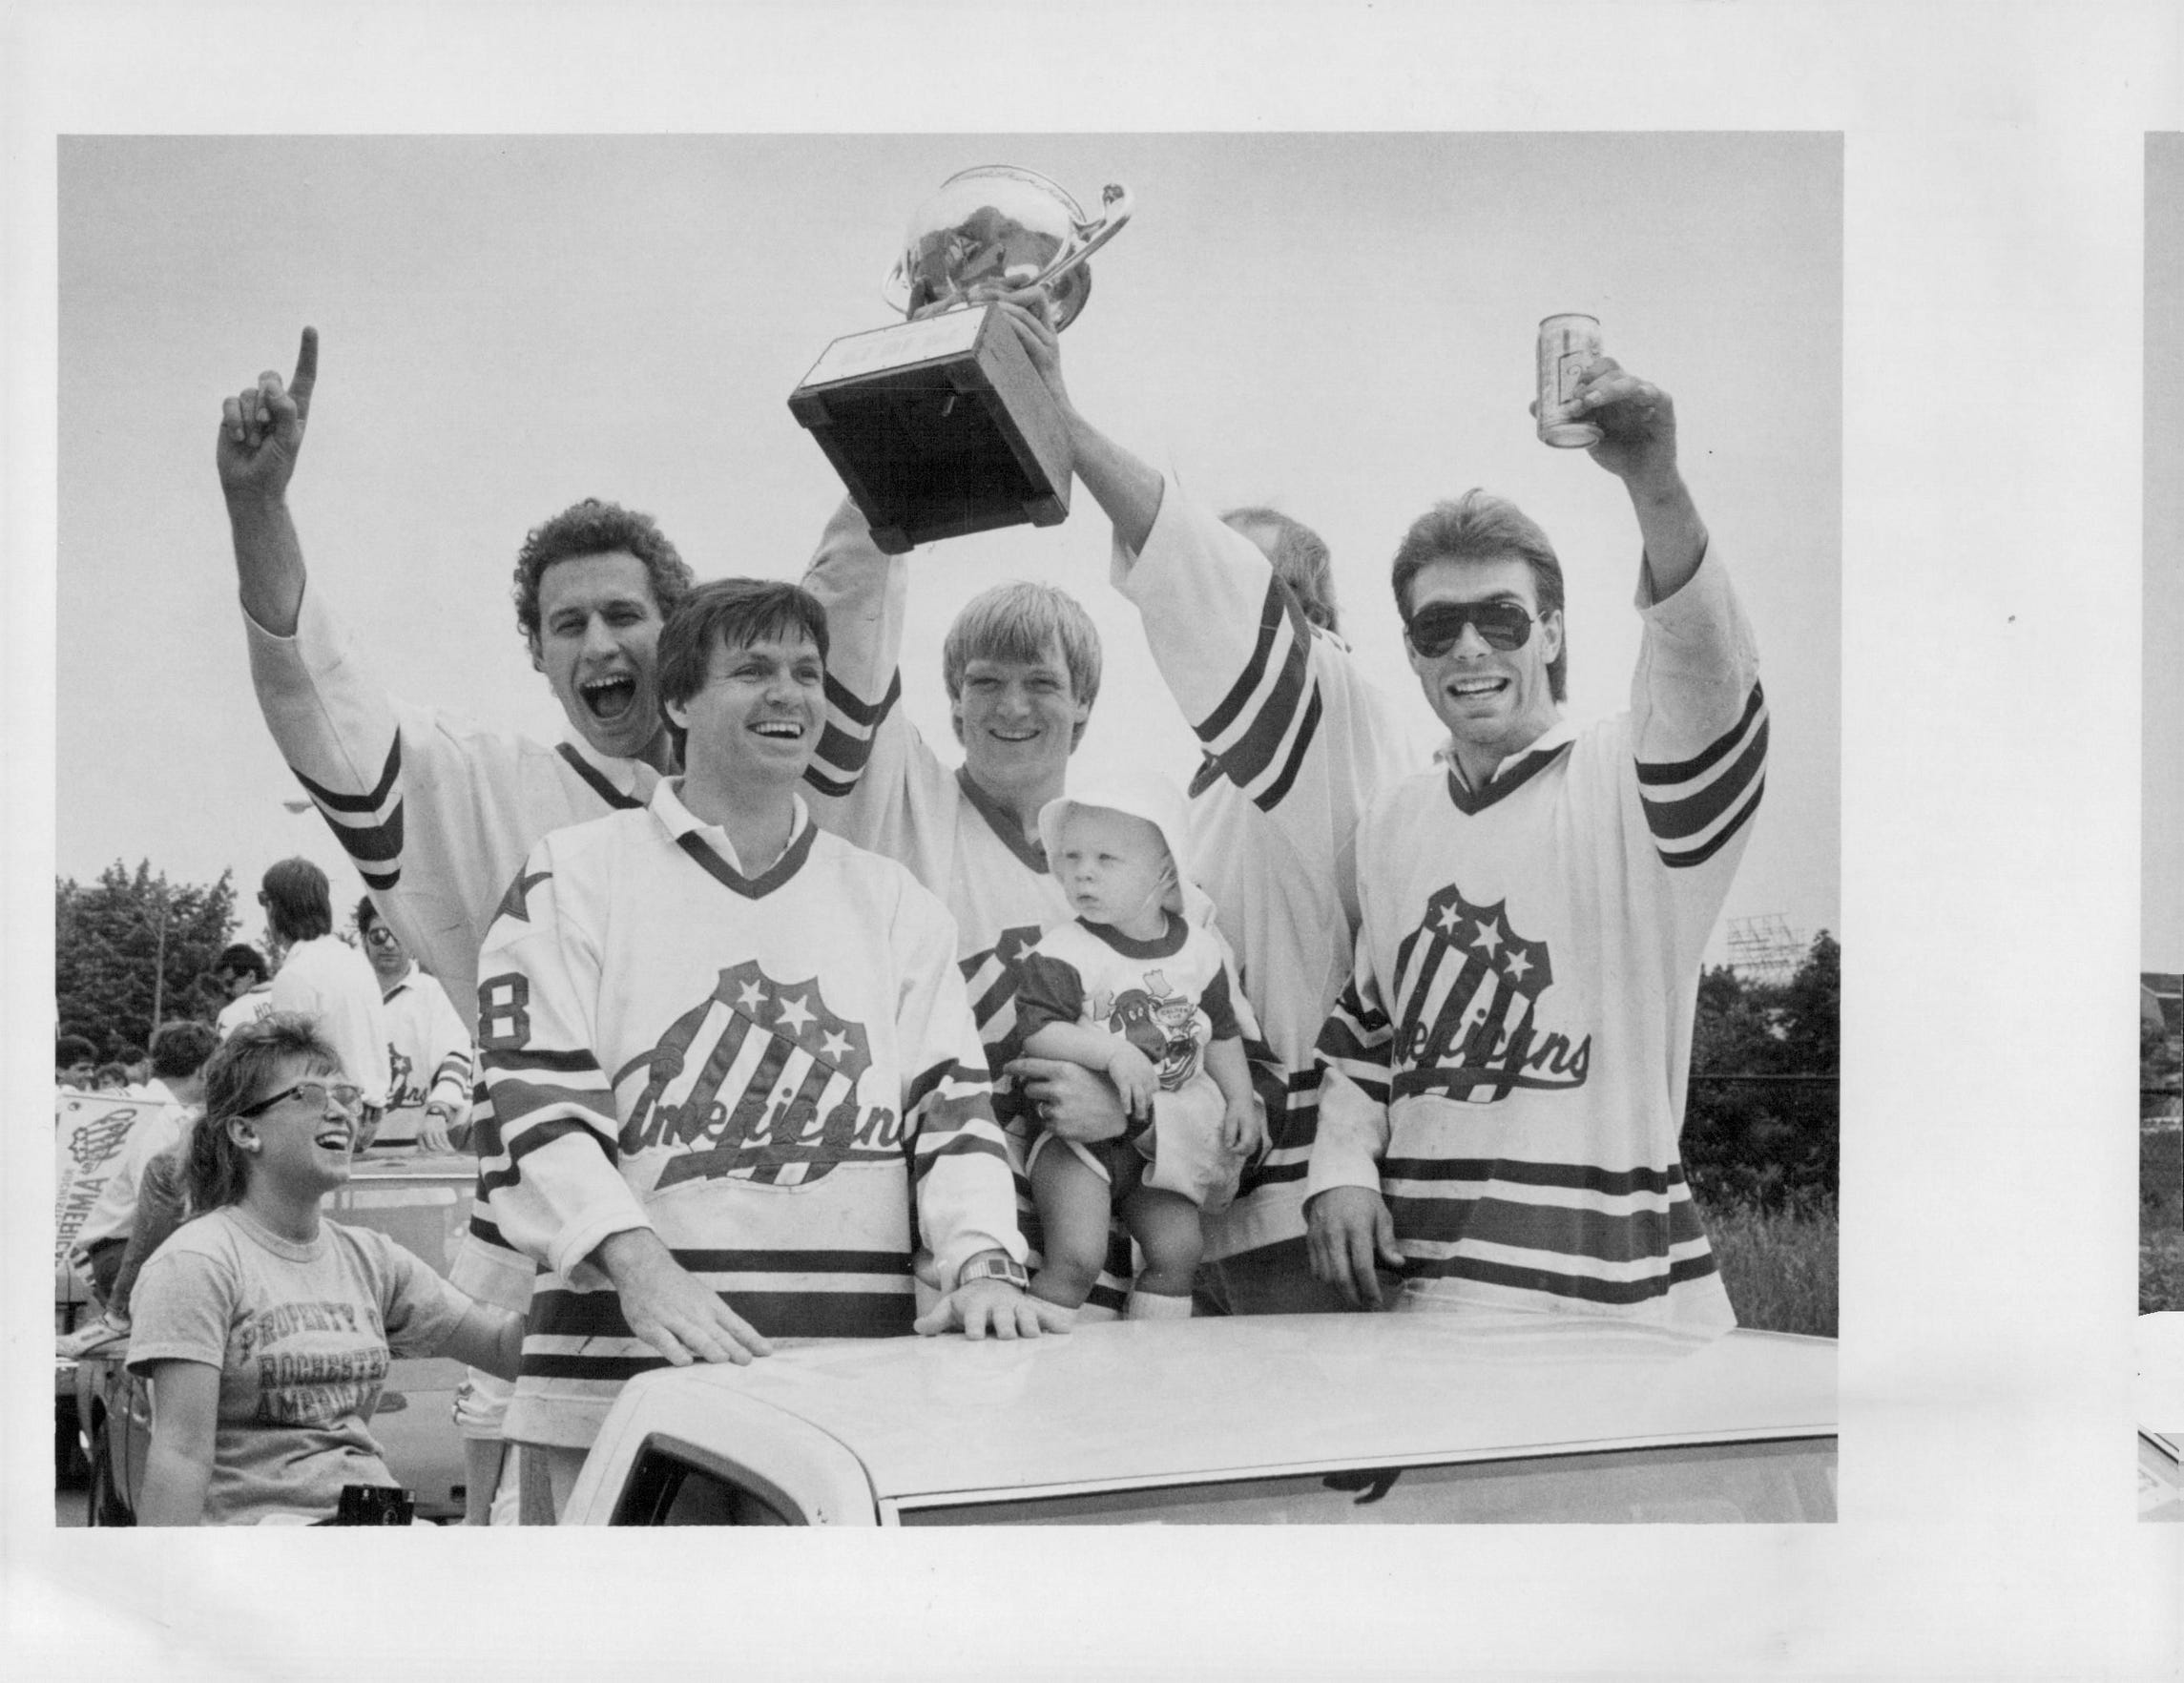 Amerks (left to right) Jack Brownschilde, Don Lever, Dave Fenyves, Andy Ristau and Warren Harper celebrate as the team parades through downtown Rochester following their Calder Cup victory in 1987.